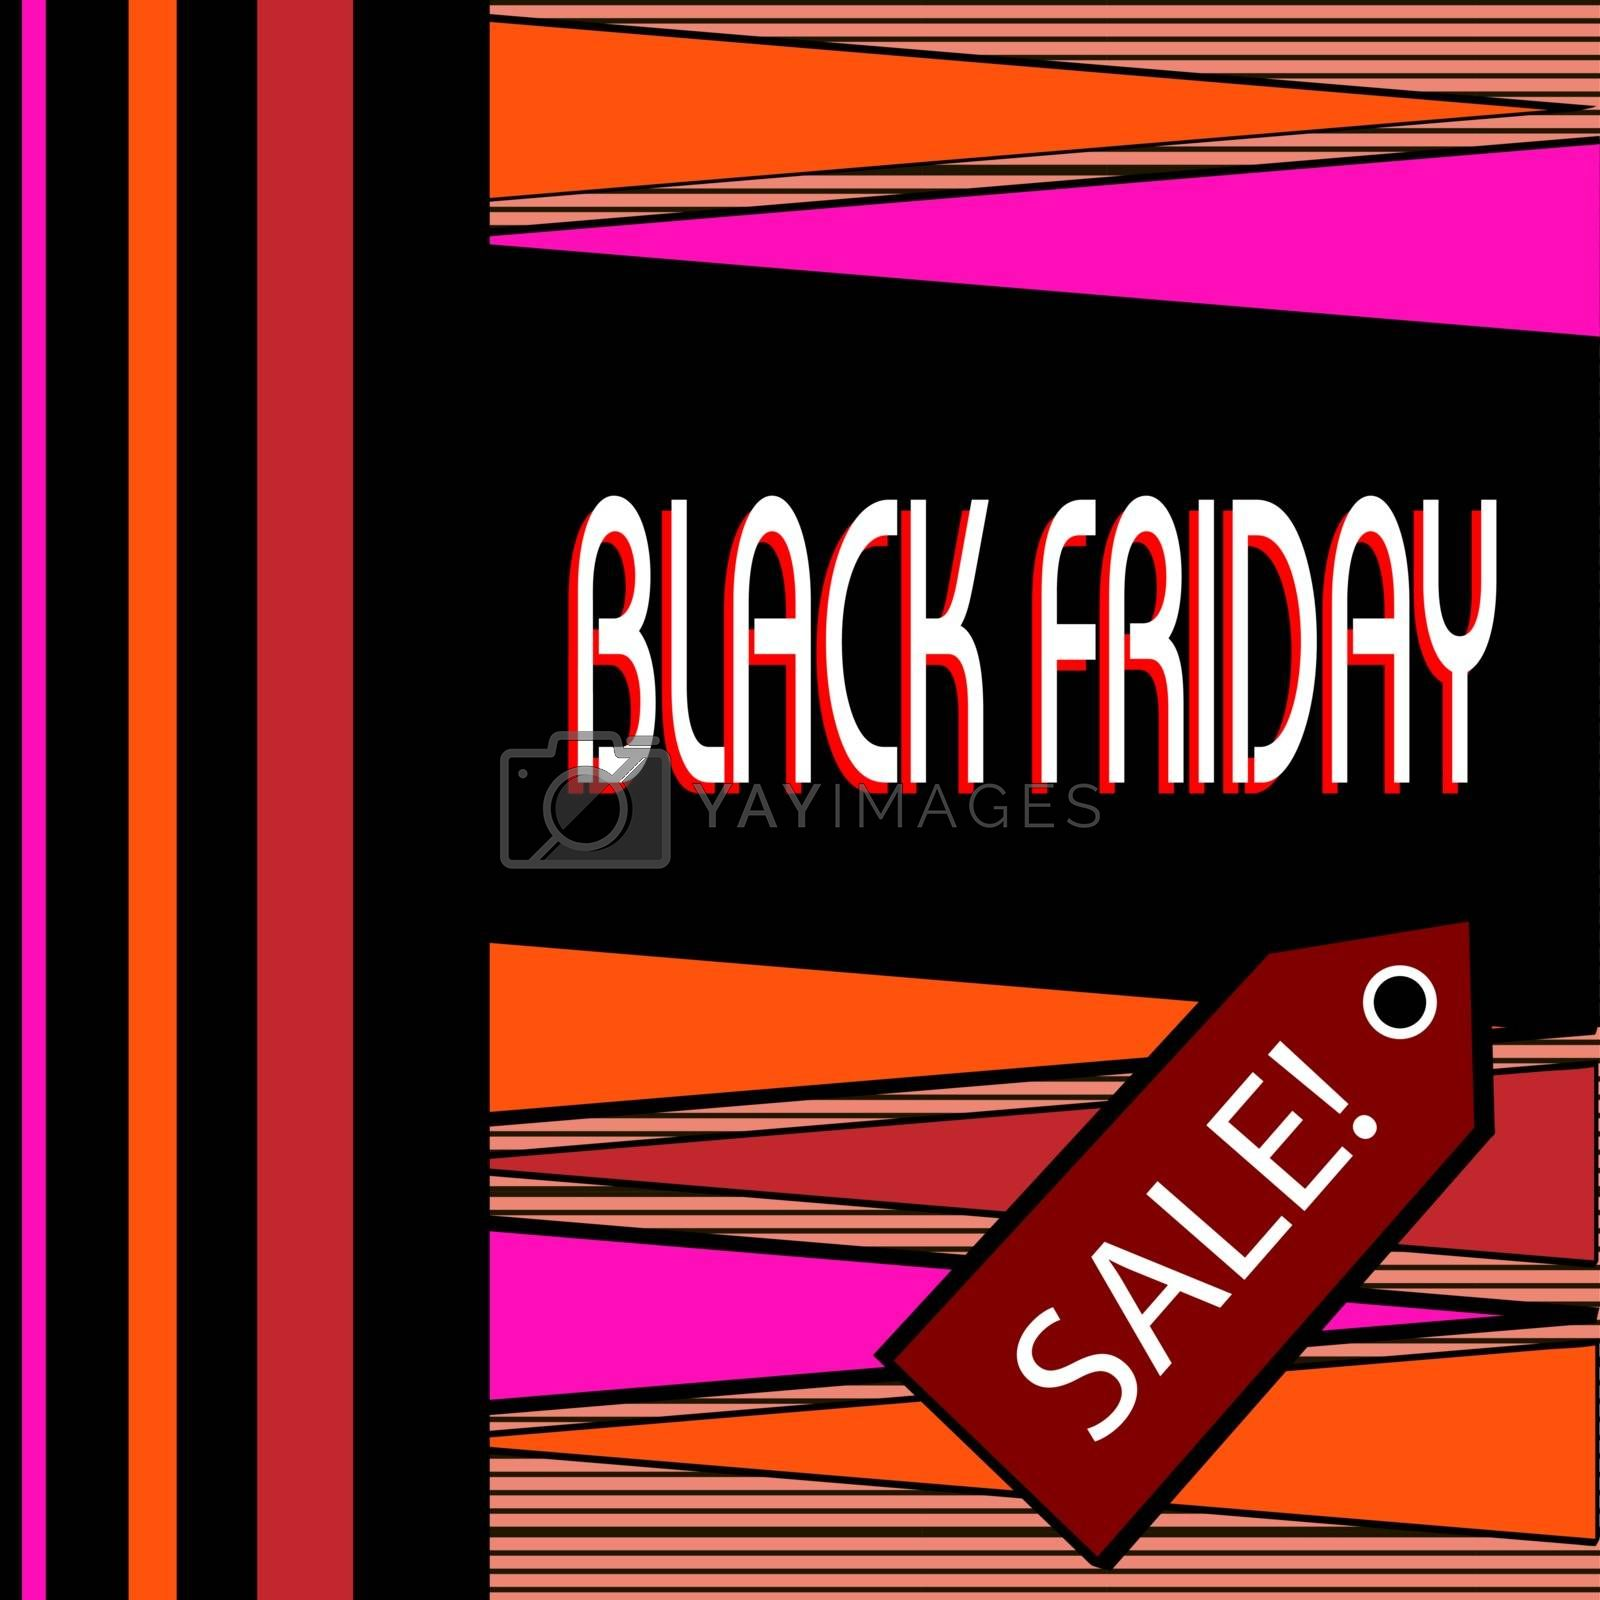 Retro black friday flyer design in pink and orange colors with red price tag